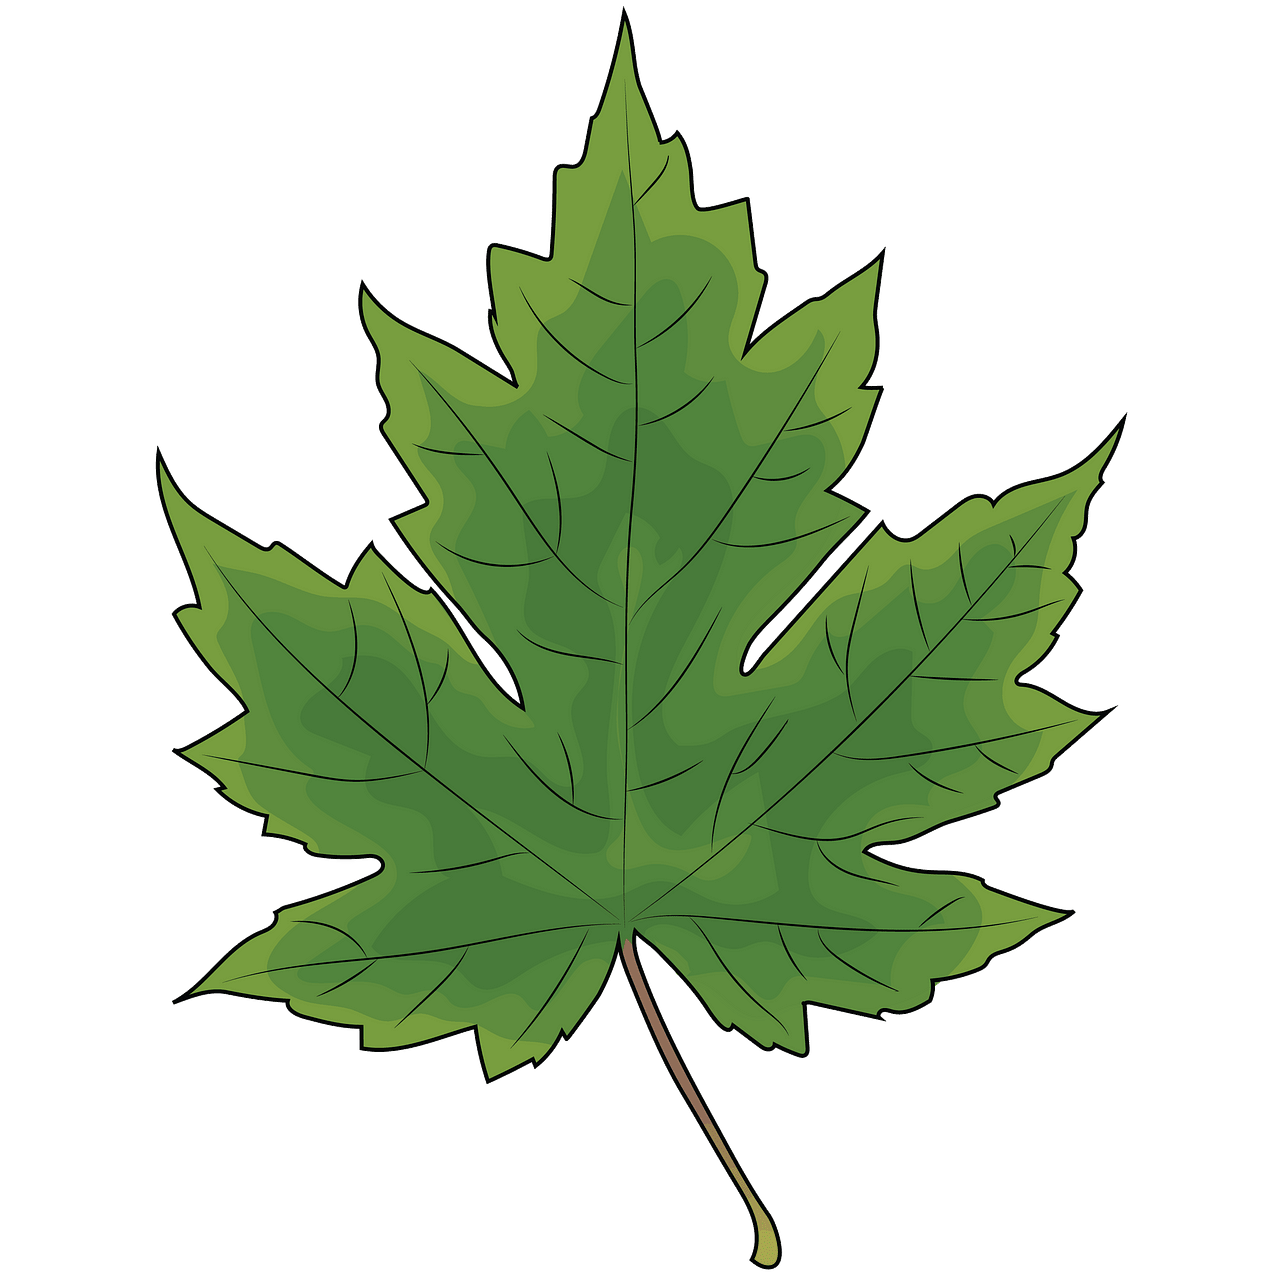 Maple leaf clipart. Free download..